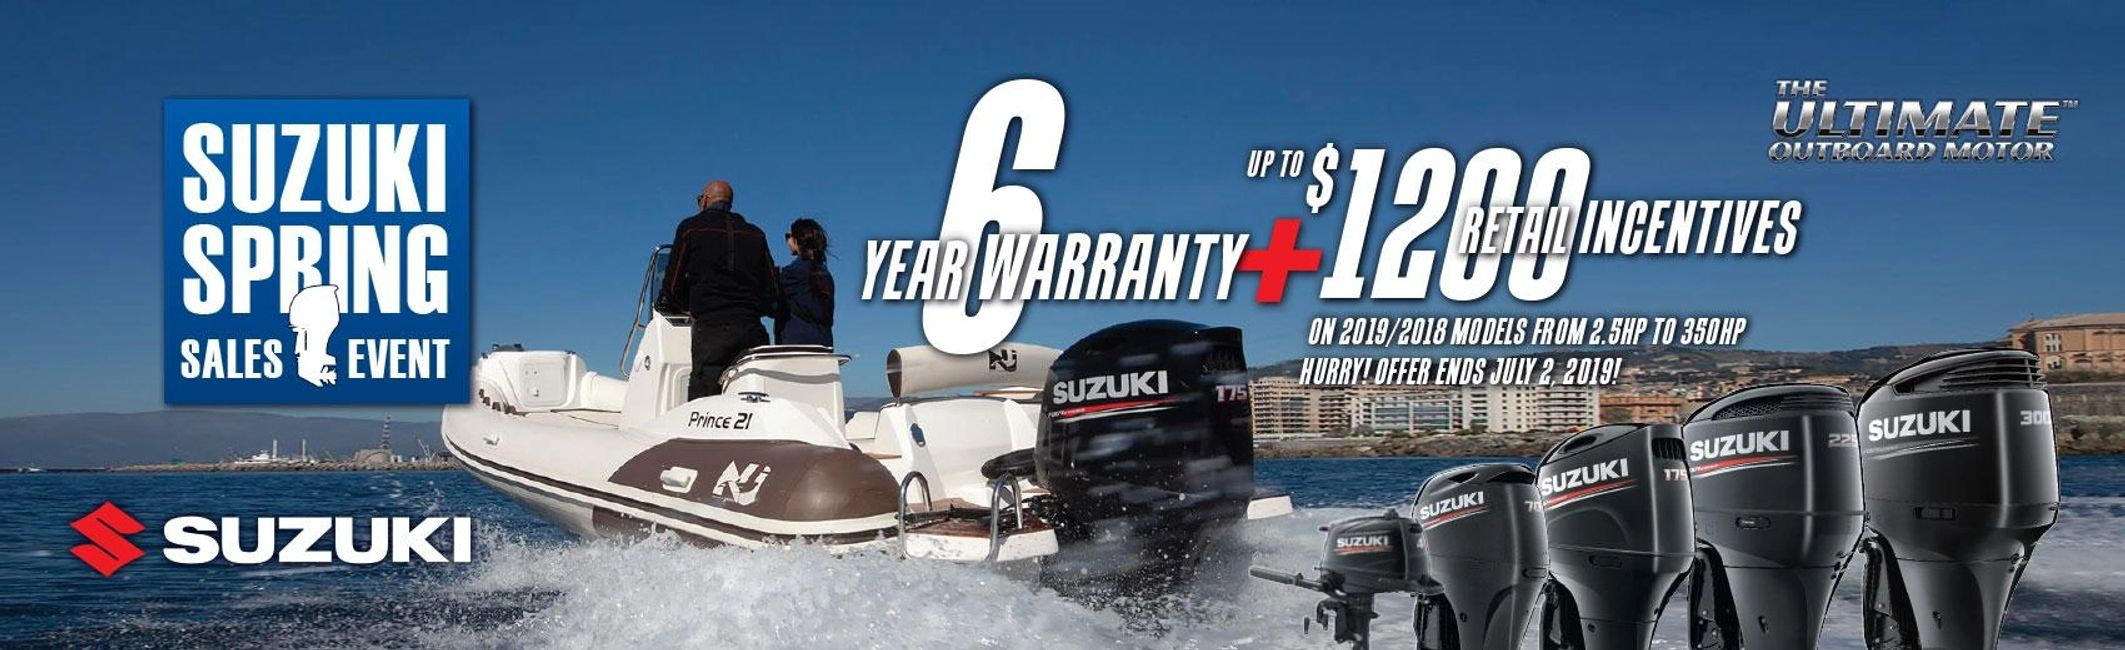 Suzuki Marine Spring Sales Event Extended Warranty and Retail Incentives